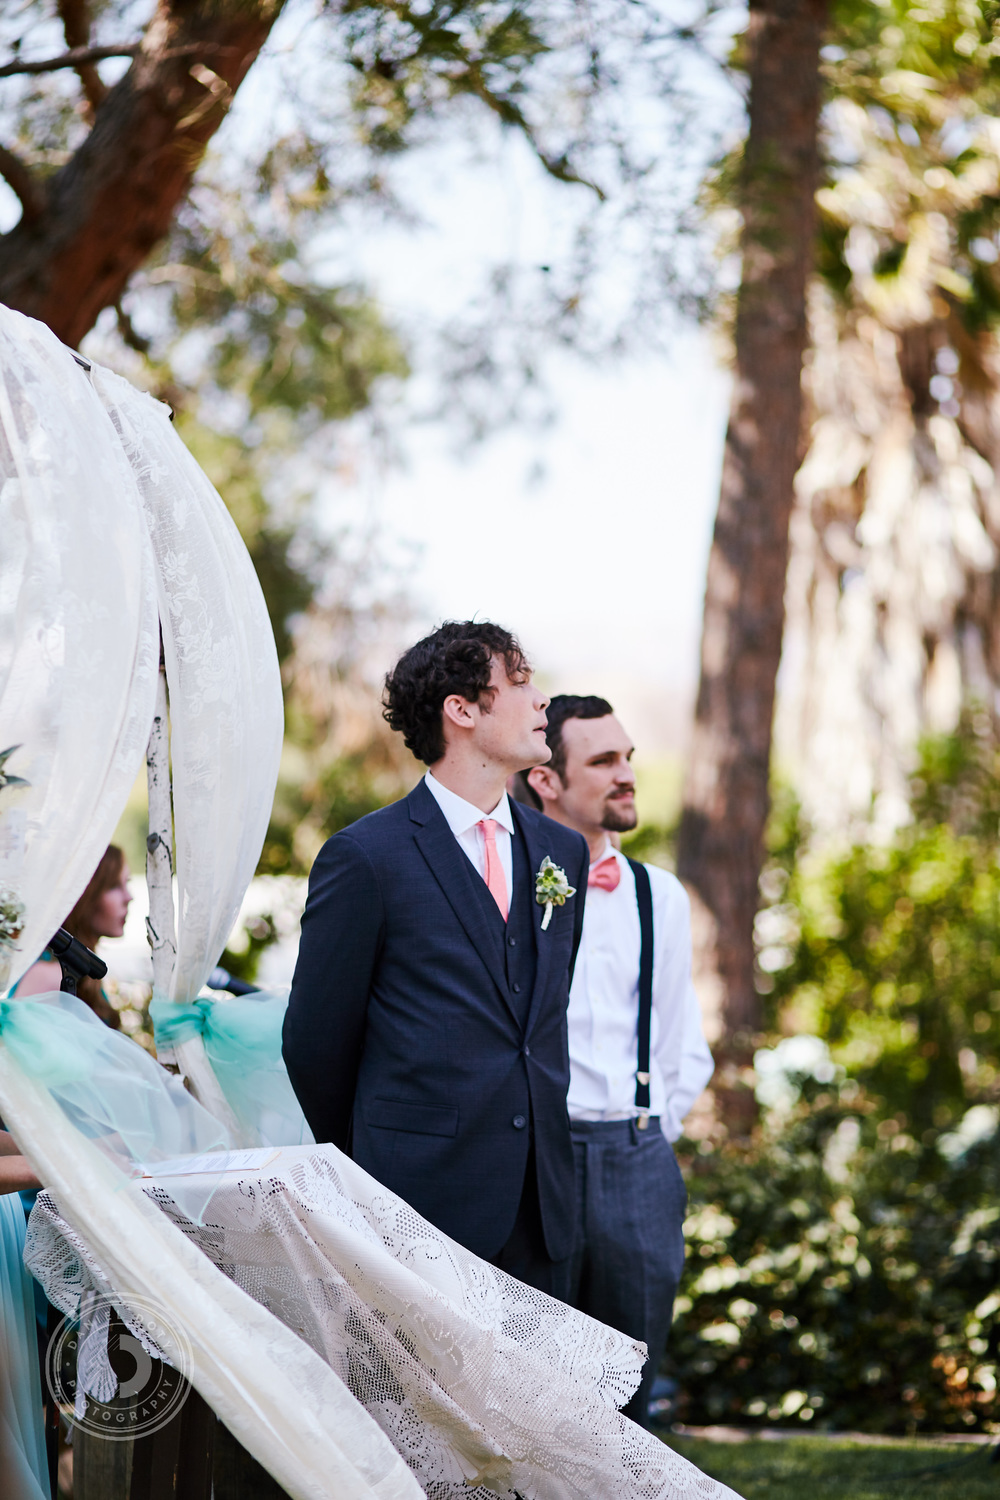 Daniel Doty Photography Erin Colin SoCal Wedding Photographer Strathearn 115.jpg